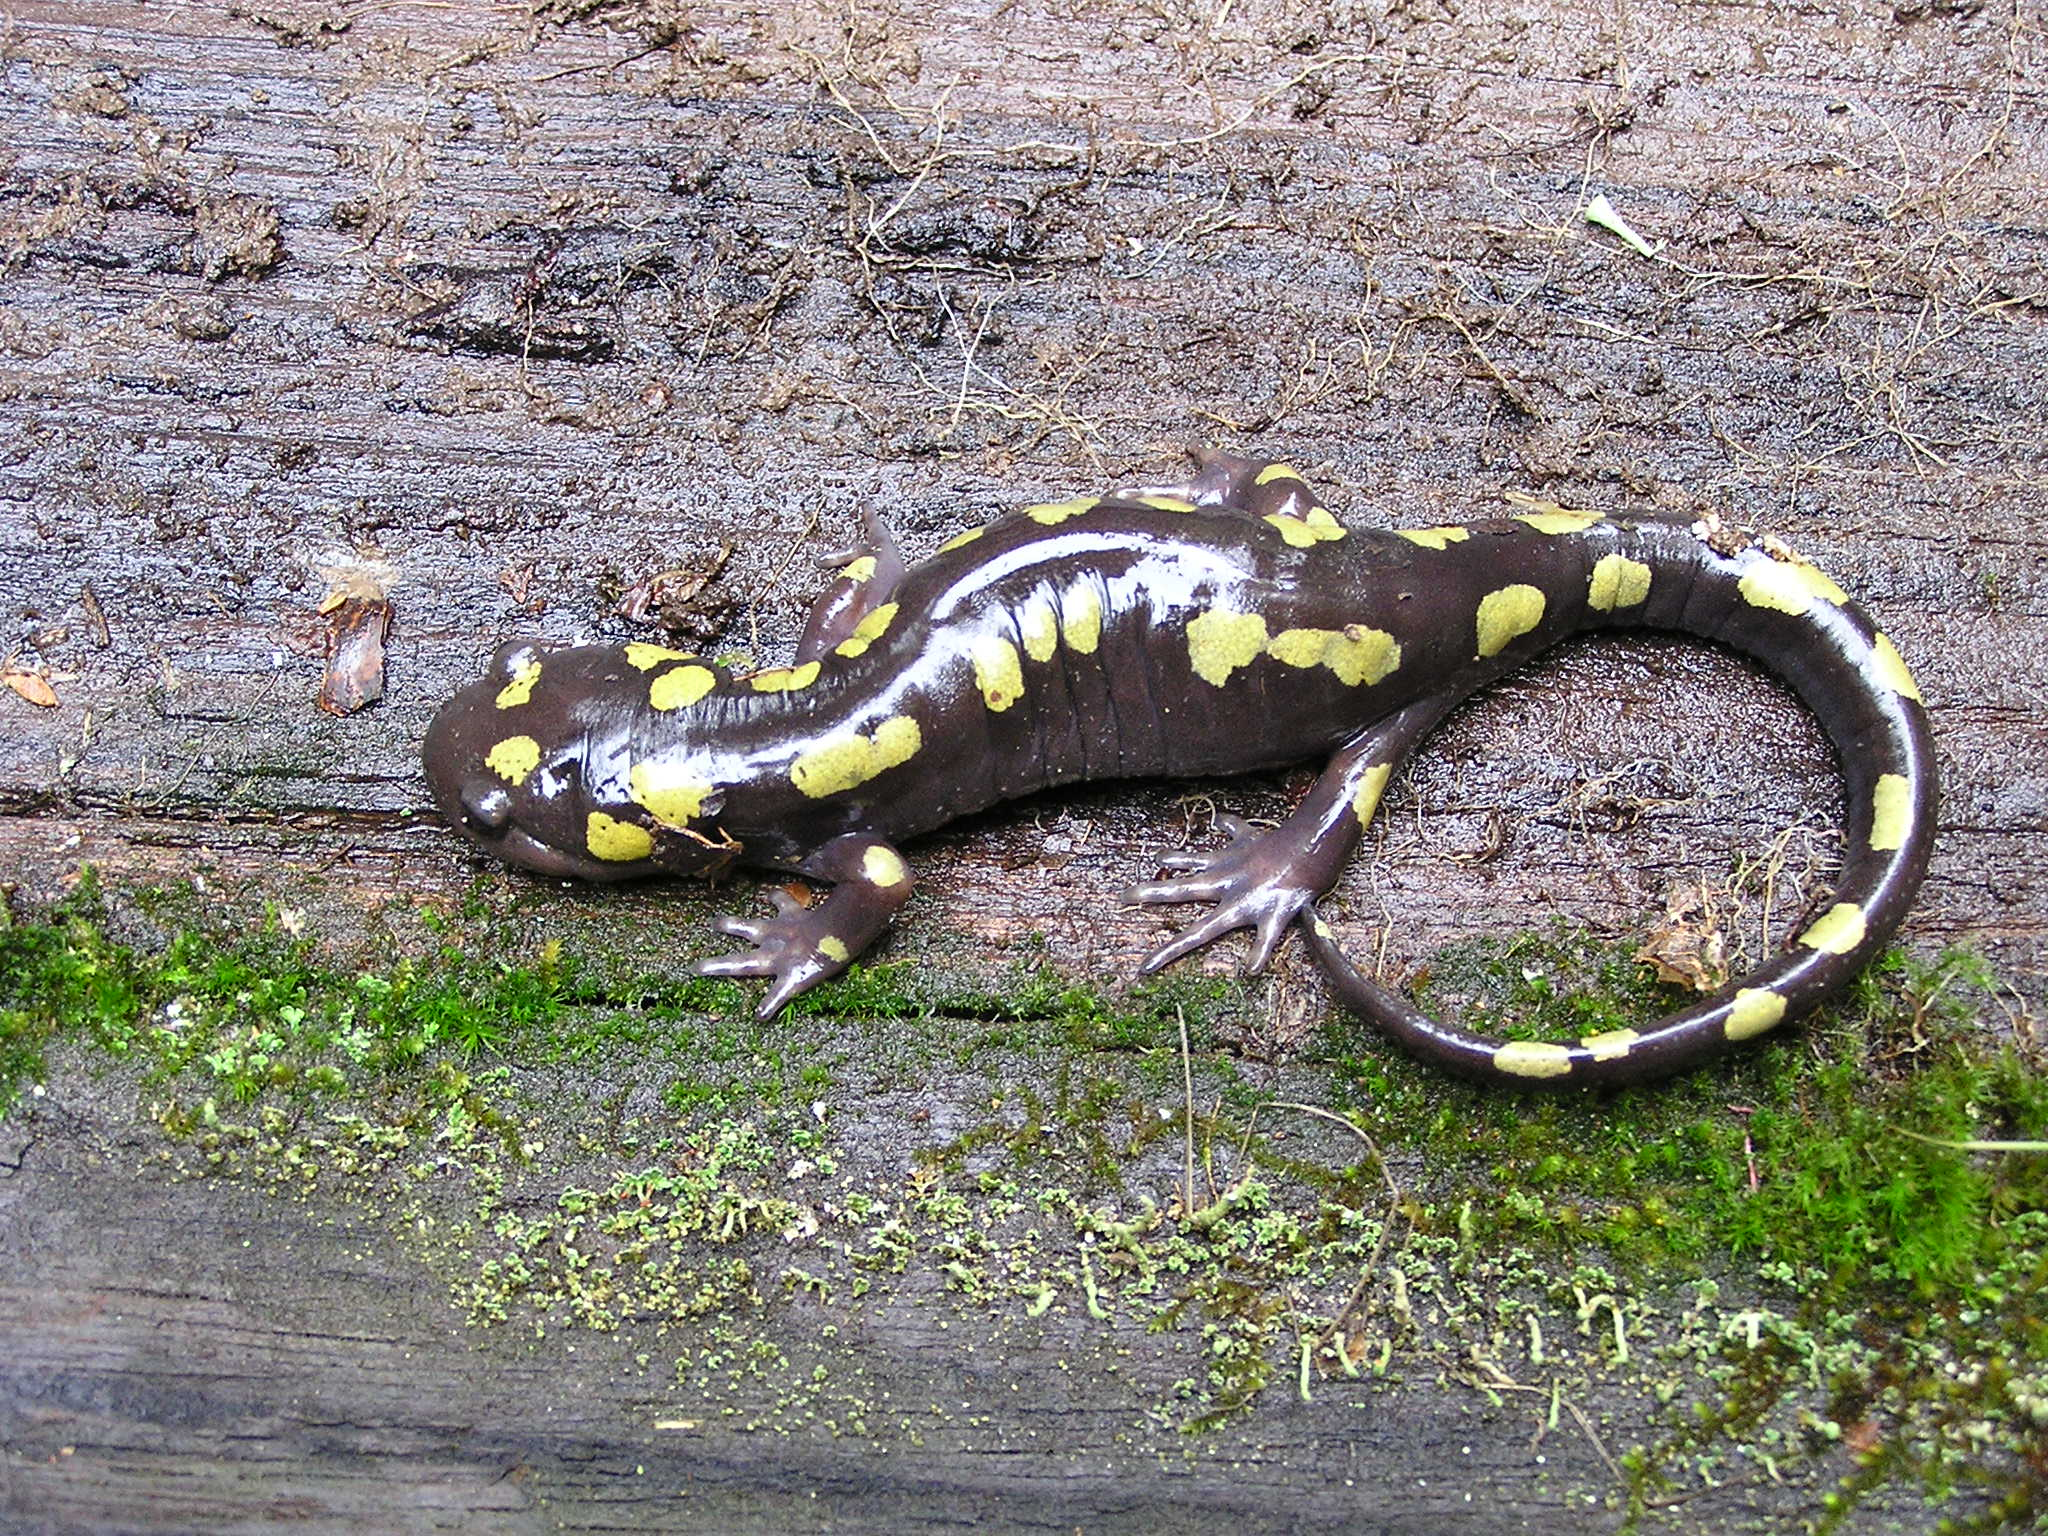 spotted salamander - Journey to whitetop mountain where you will find multiple rare species of salamanders, some of which are only found on two or three mountain tops in the world. The Appalachian mountain chain has the richest diversity of salamanders of any place in the world. This will be an easy walk through the woods and along the gravel whitetop mountain road searching for these tiny little creatures. Perfect trip for kids who love to turn over rocks and logs in order to find surprises out in the woods. Total time for this hike including transportation would be 3-4 hrs. Snacks, water, and supplies for examining the salamanders provided.